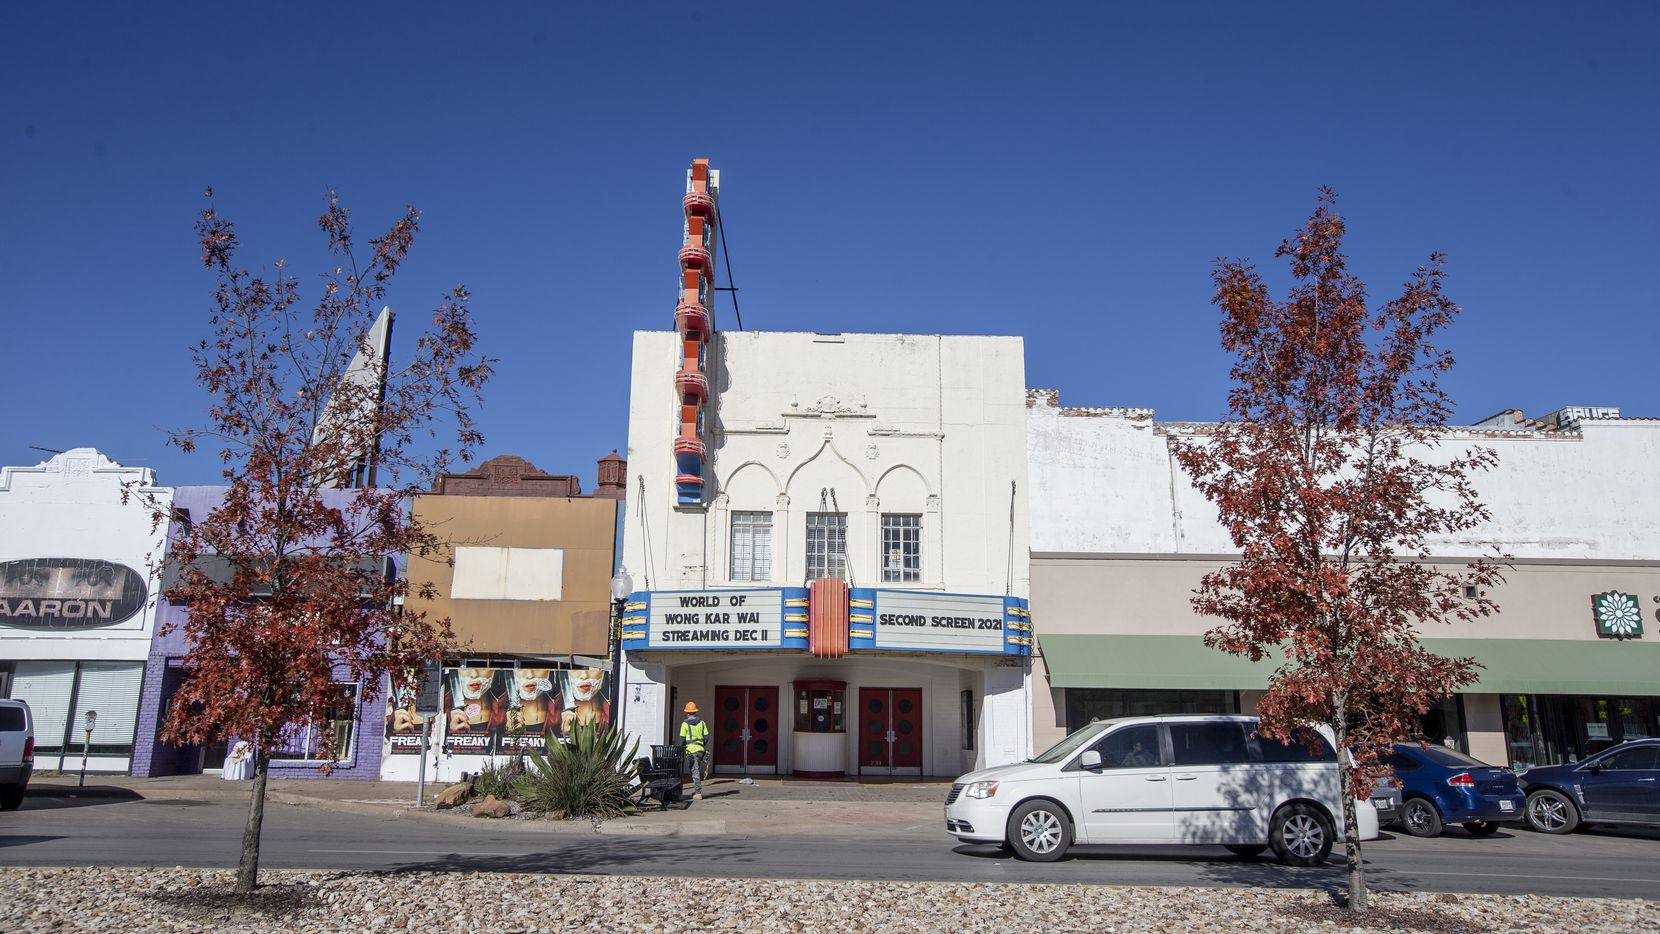 The Texas Theatre is one of the venues screening films during the Oak Cliff Film Festival, which returns June 24-27.